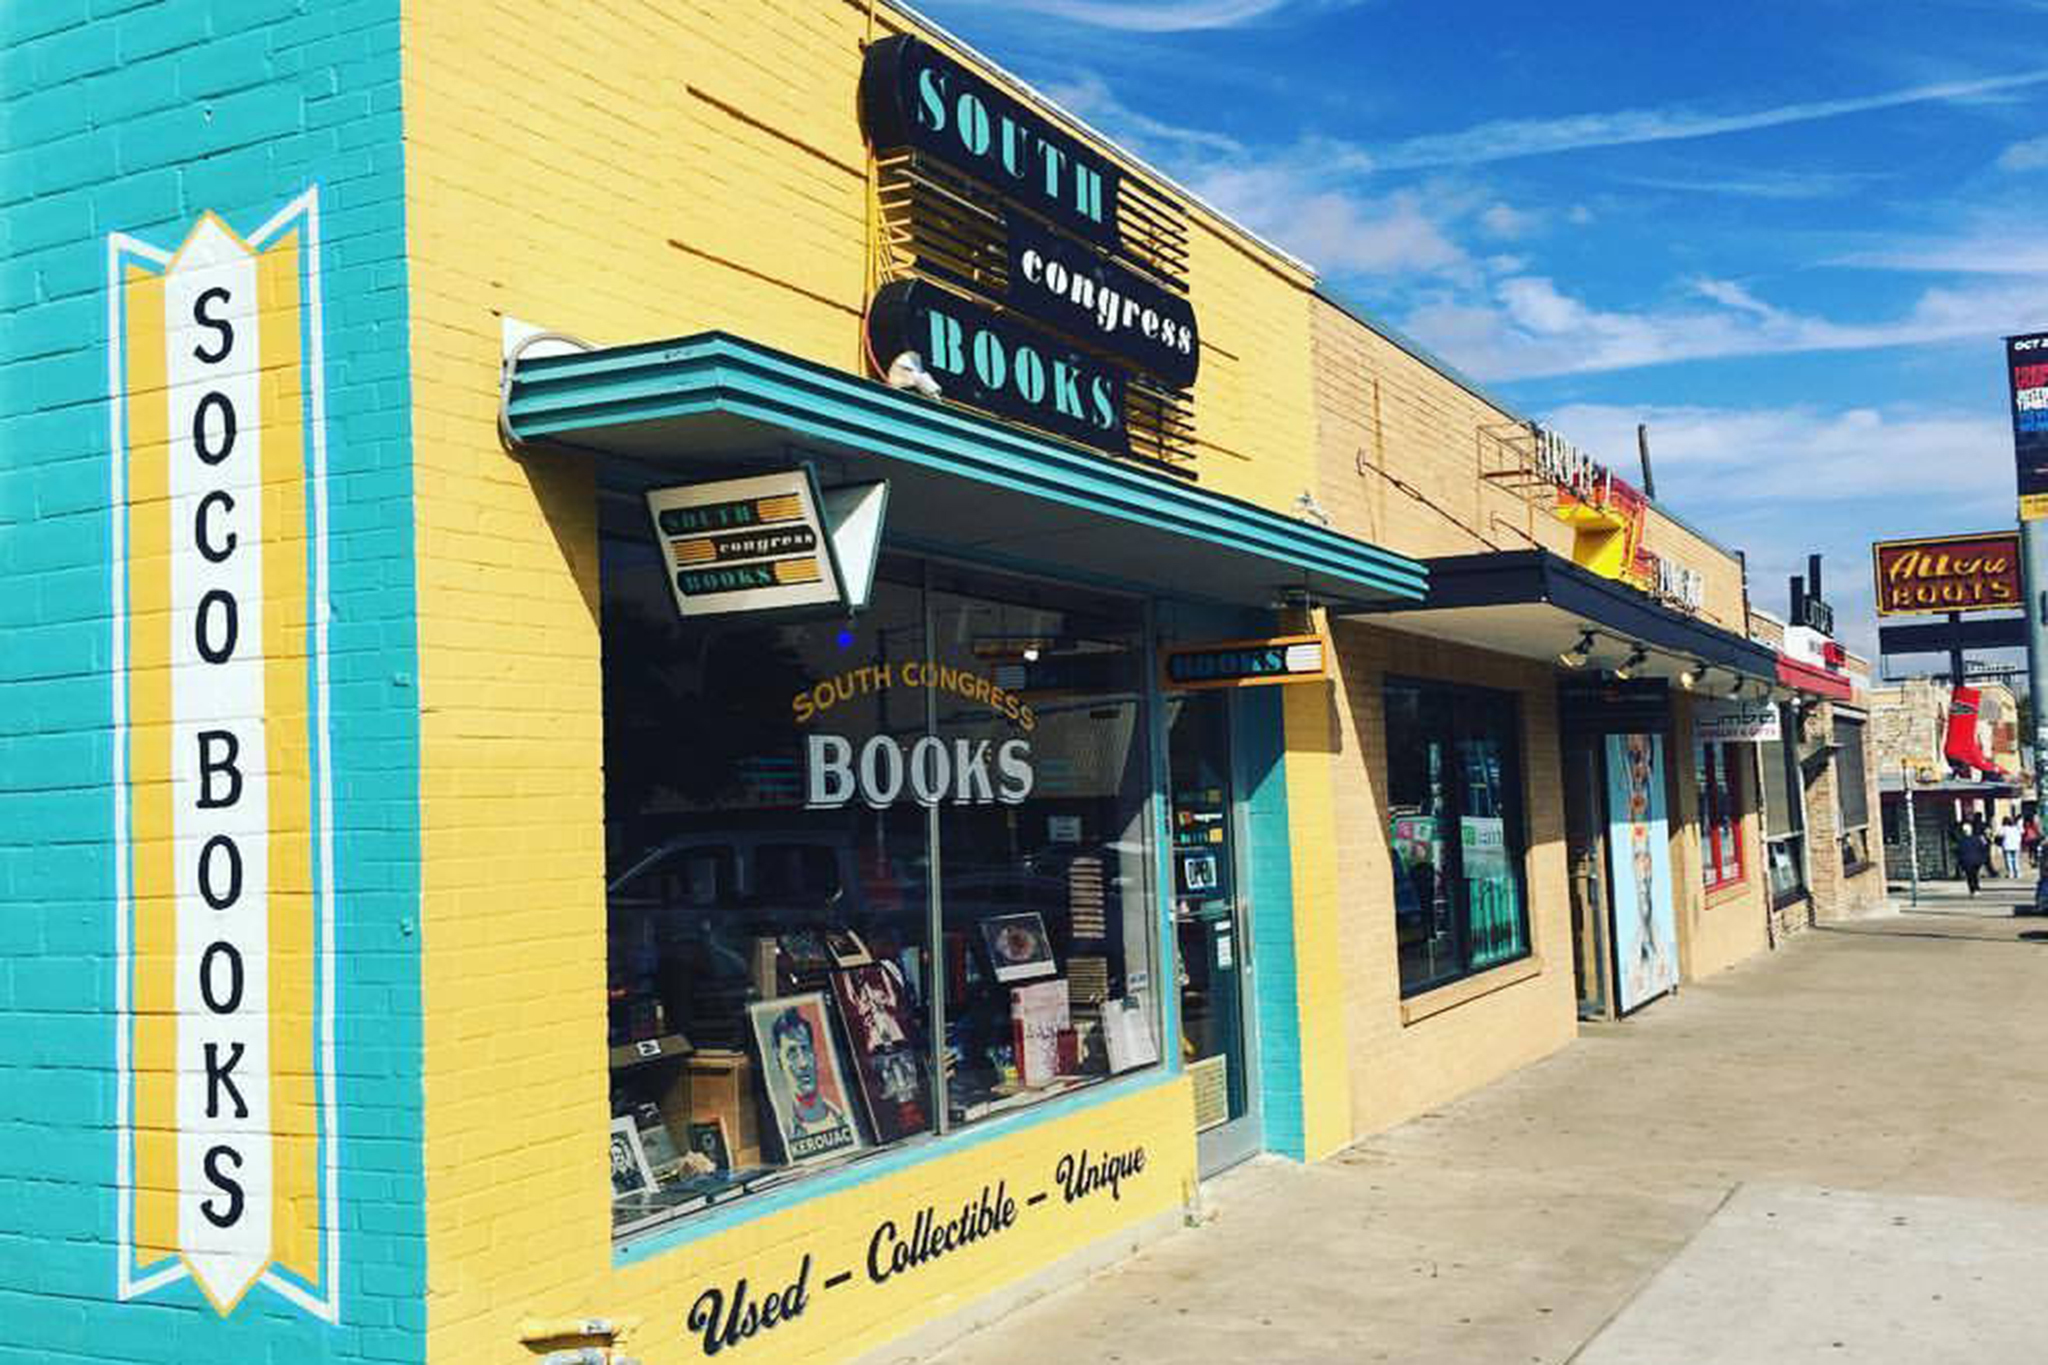 South Congress Books